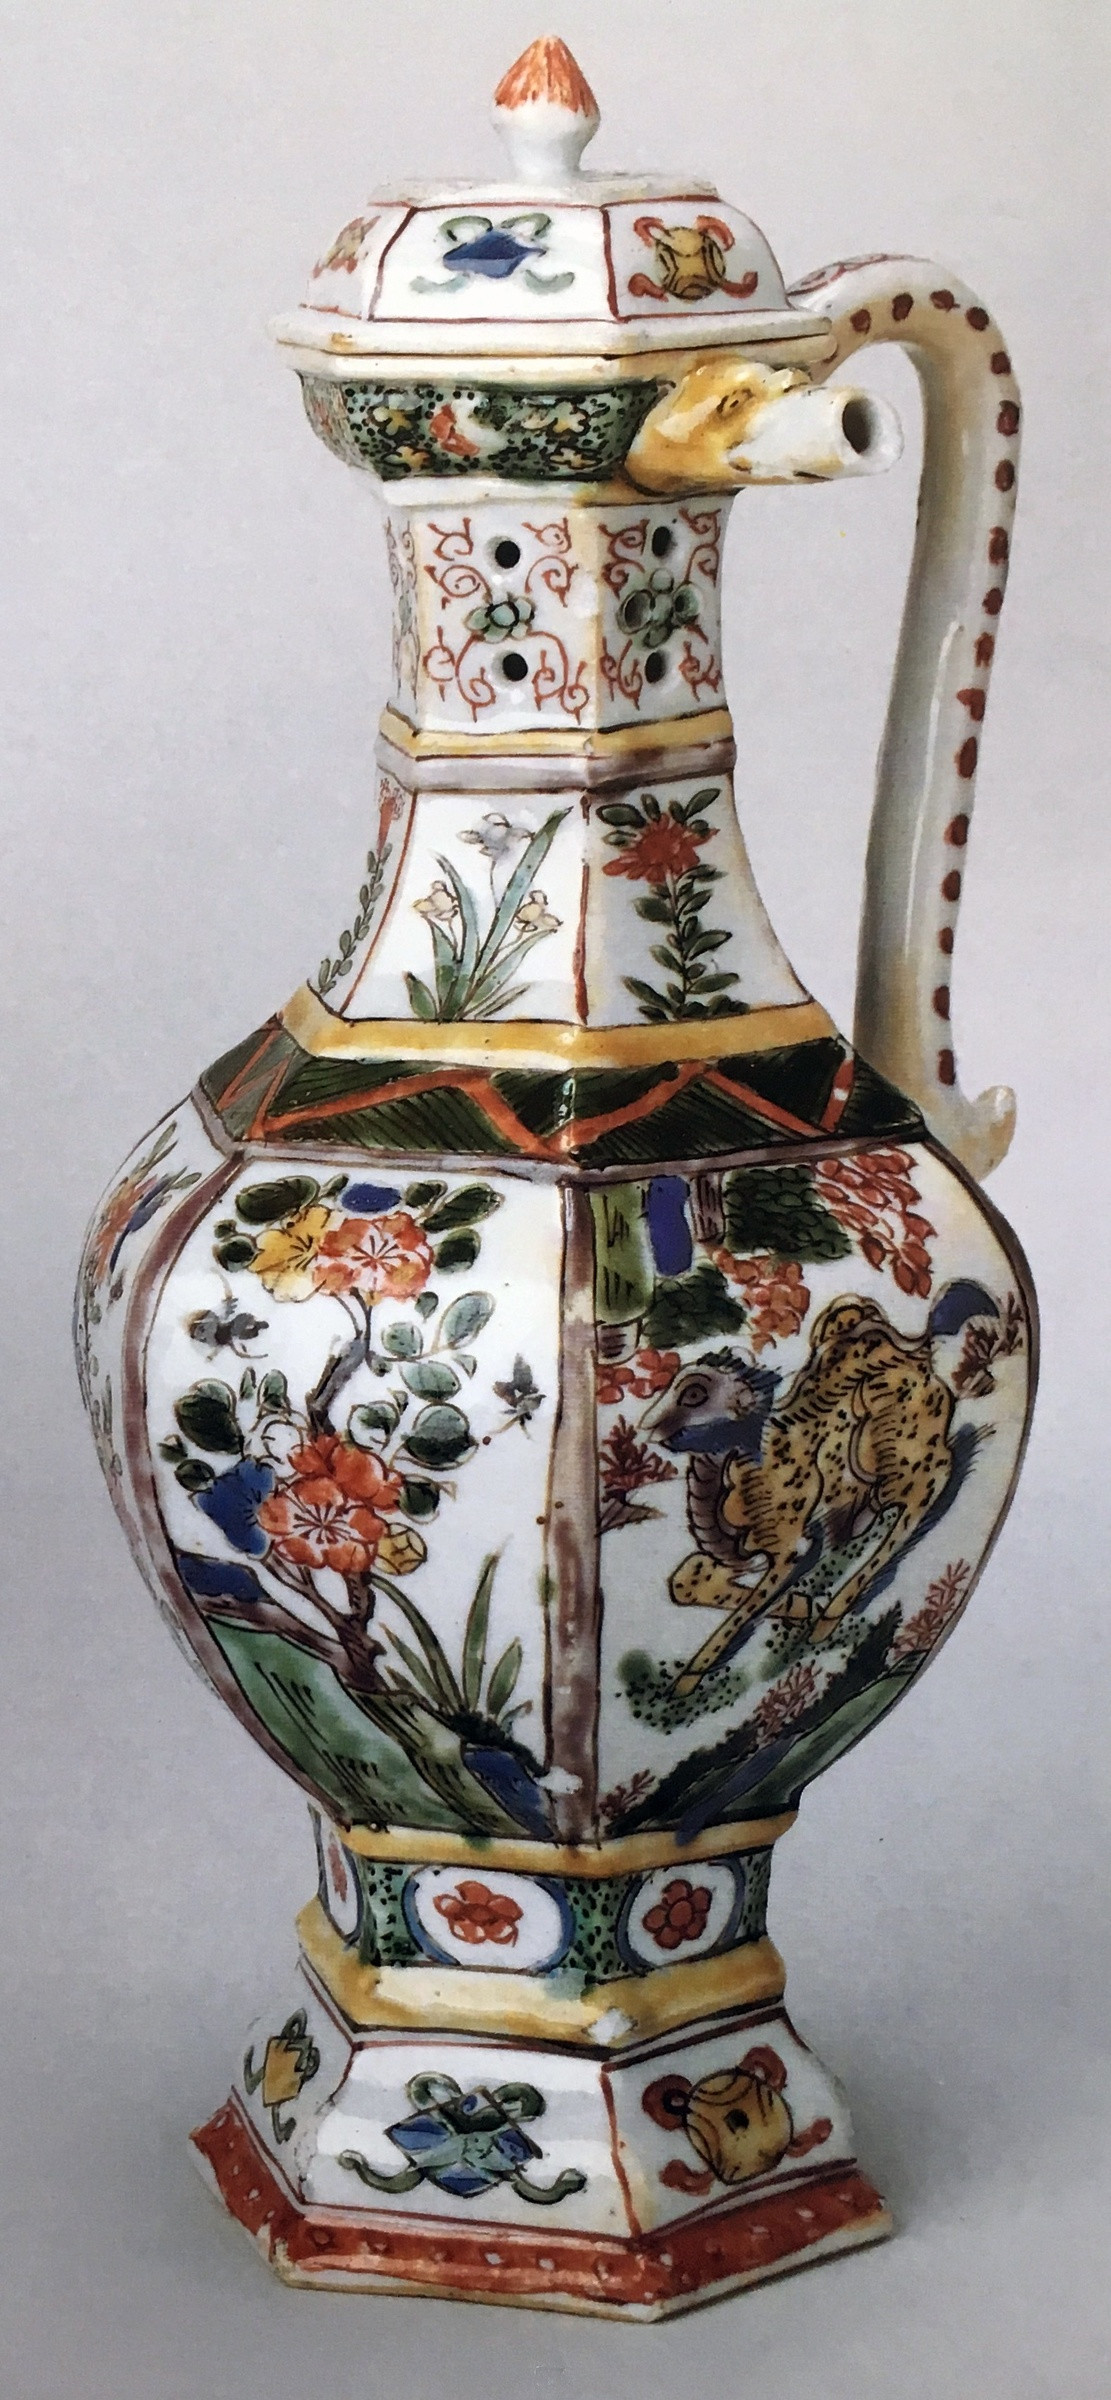 17th century chinese vase of a rare famille verte puzzle jug and cover kangxi 1662 1722 pertaining to chinese export porcelain